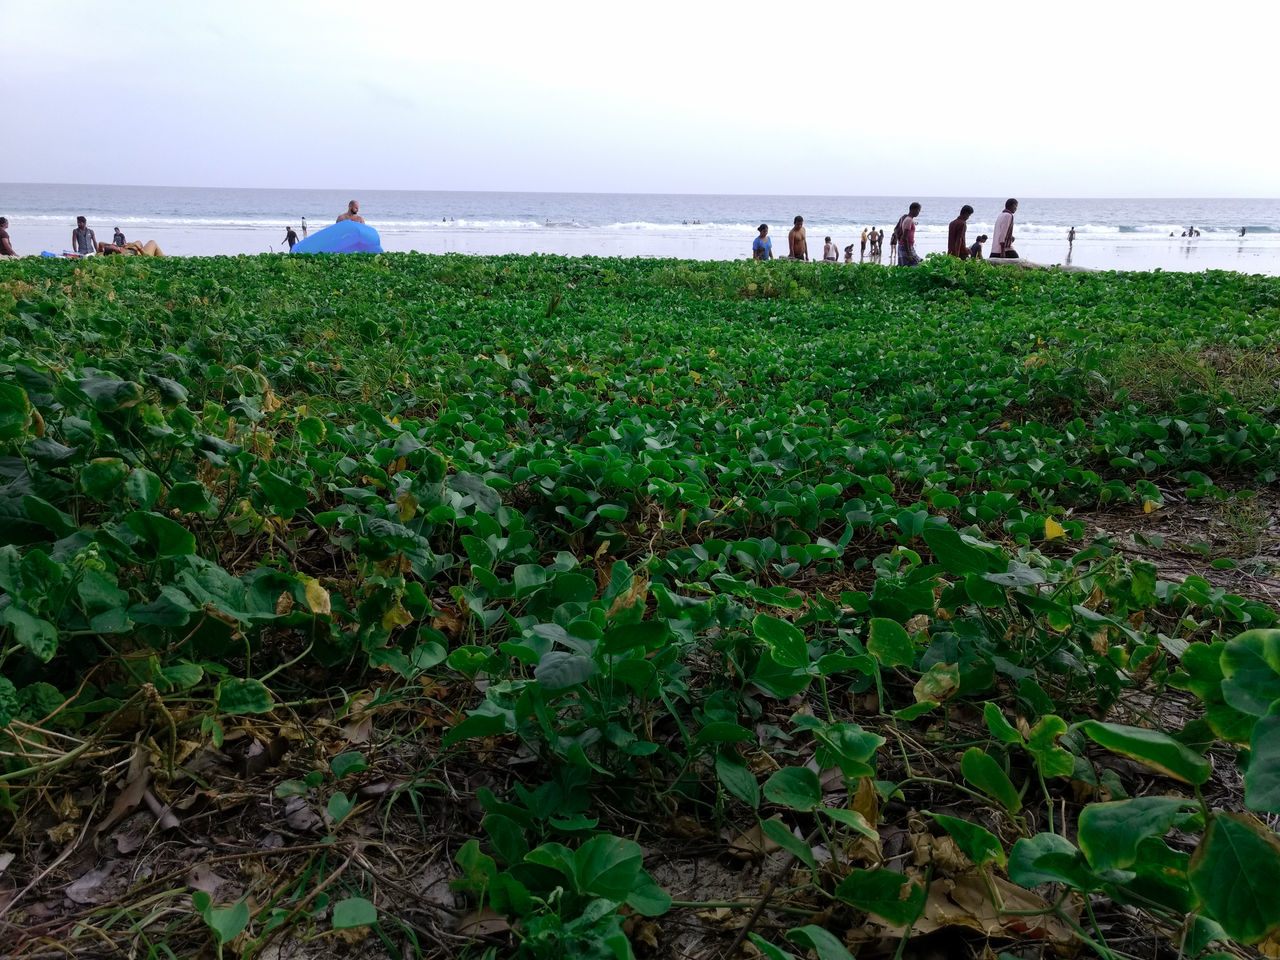 nature, sea, beauty in nature, green color, scenics, water, horizon over water, growth, outdoors, tranquility, grass, field, beach, plant, tranquil scene, day, real people, sky, large group of people, leaf, flower, people